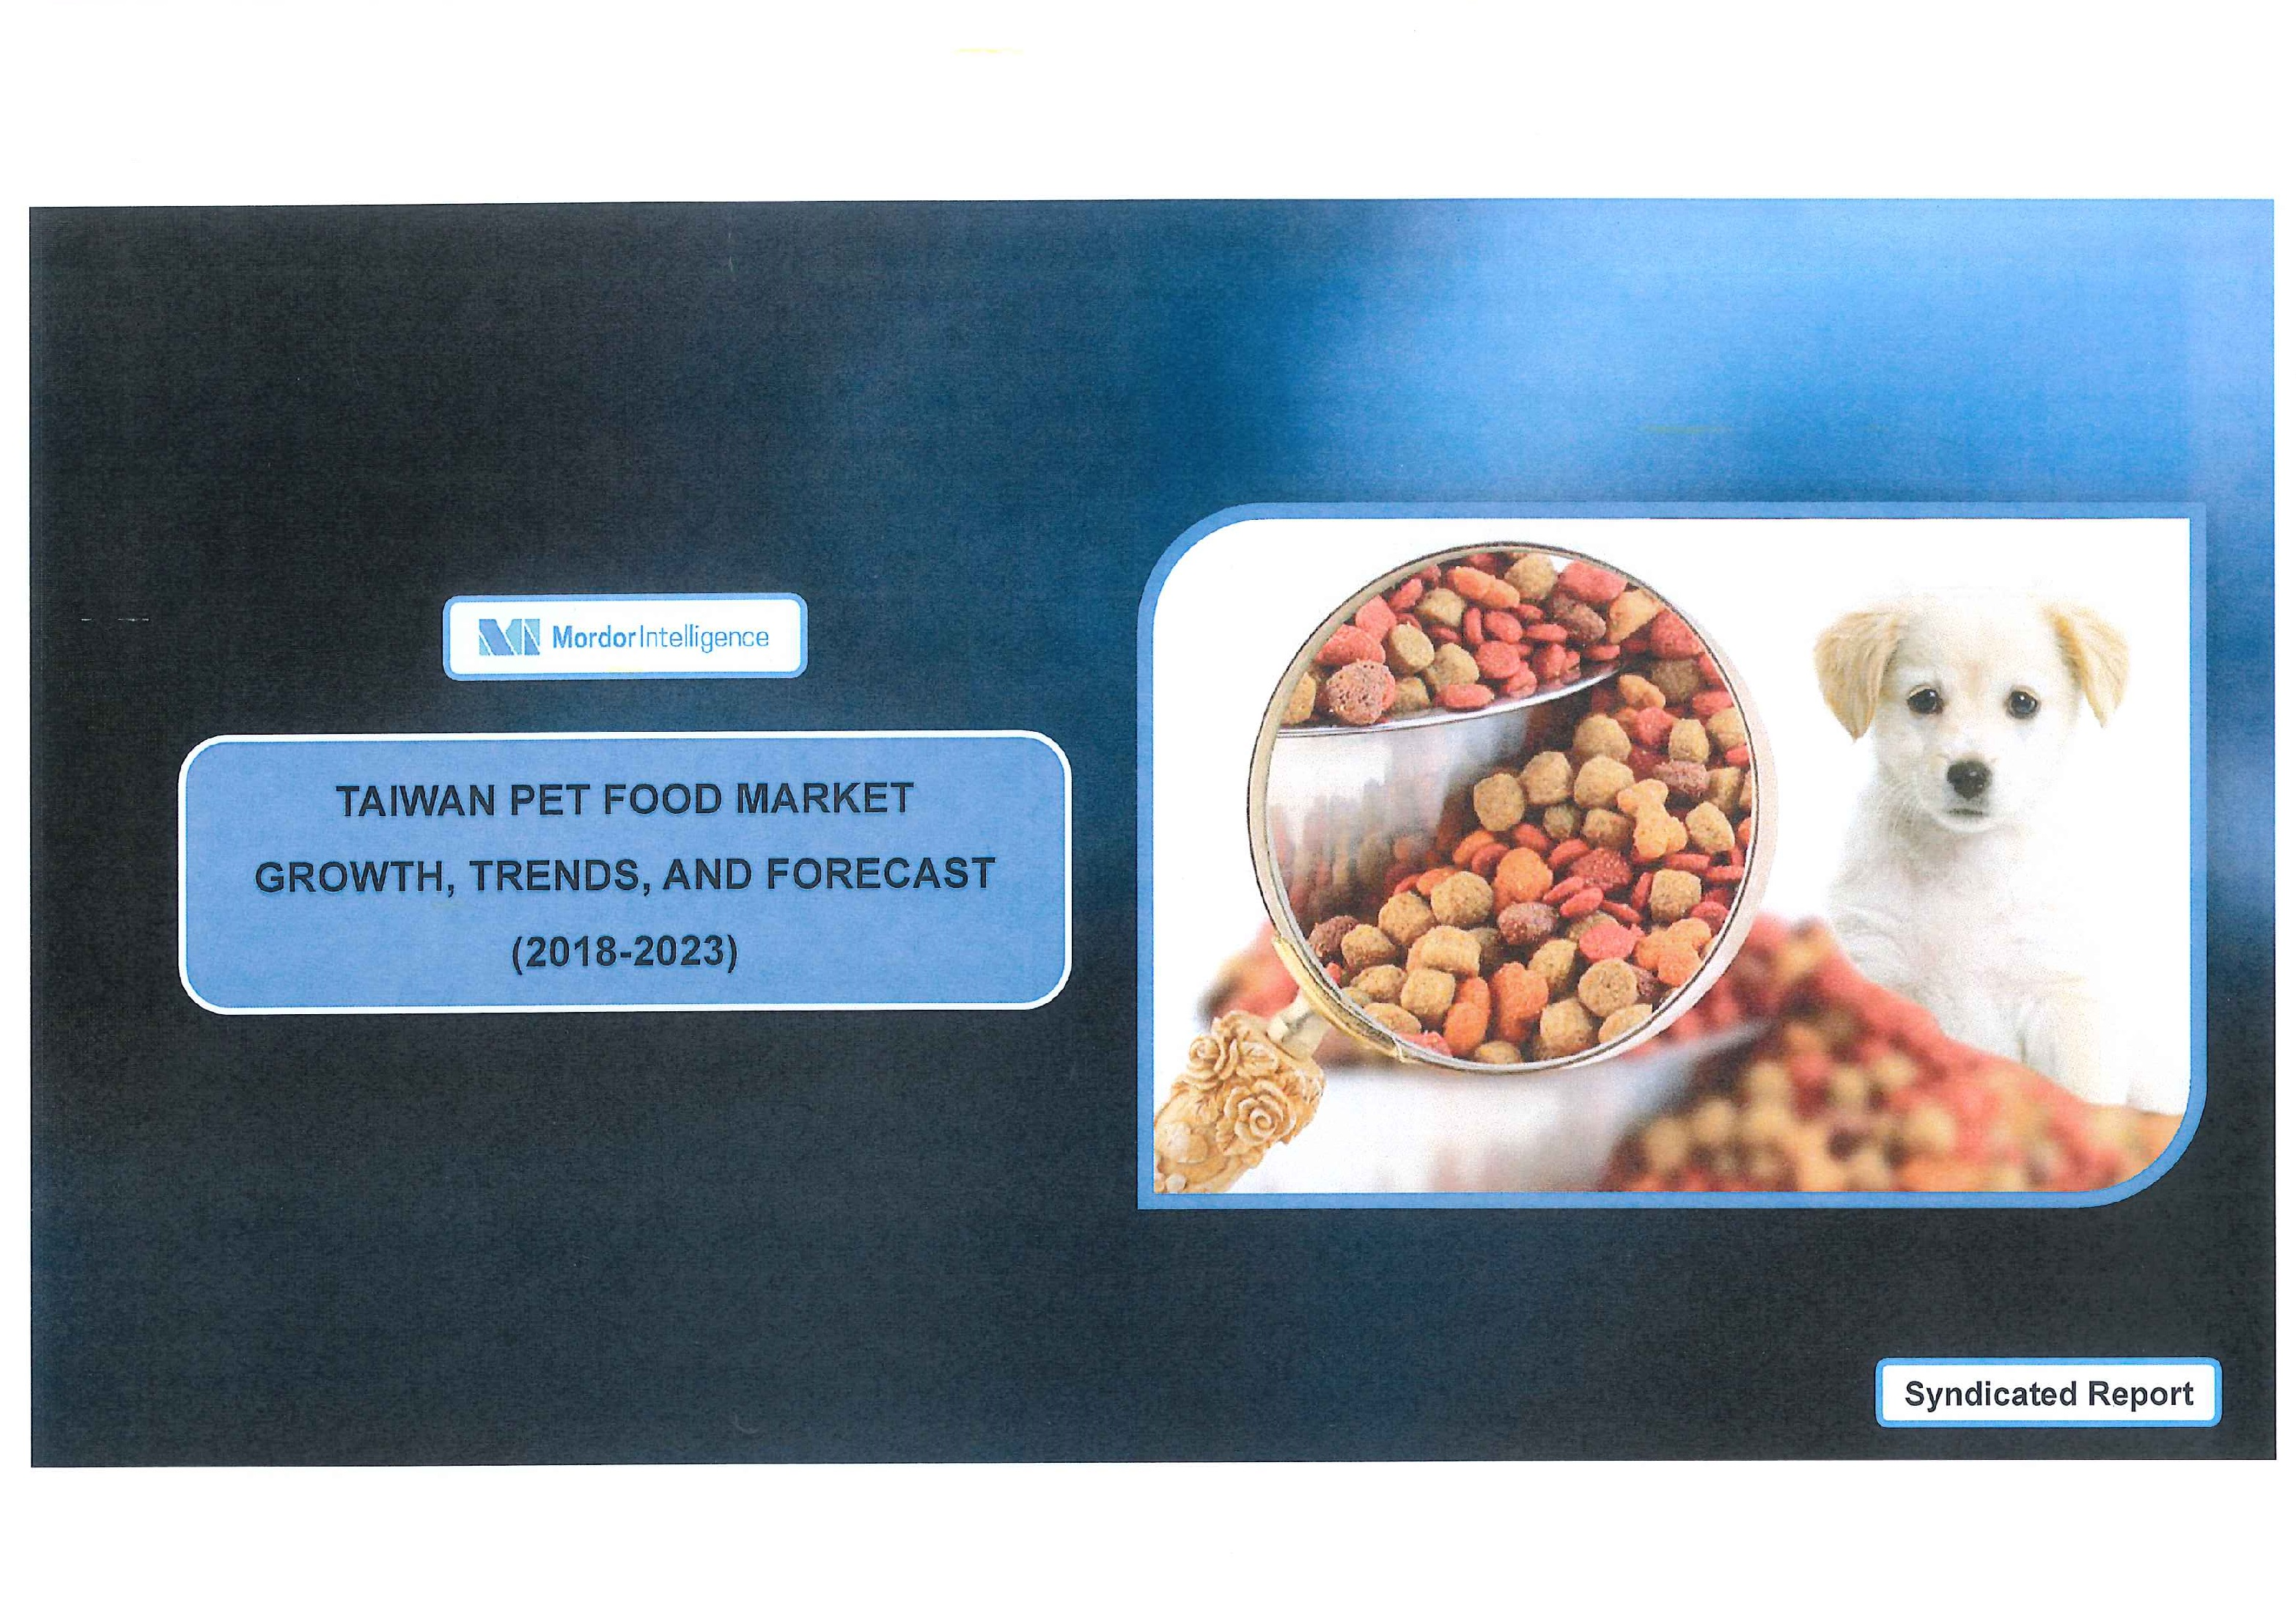 Taiwan pet food market [e-book]:growth, trends and forecast (2018-2023)